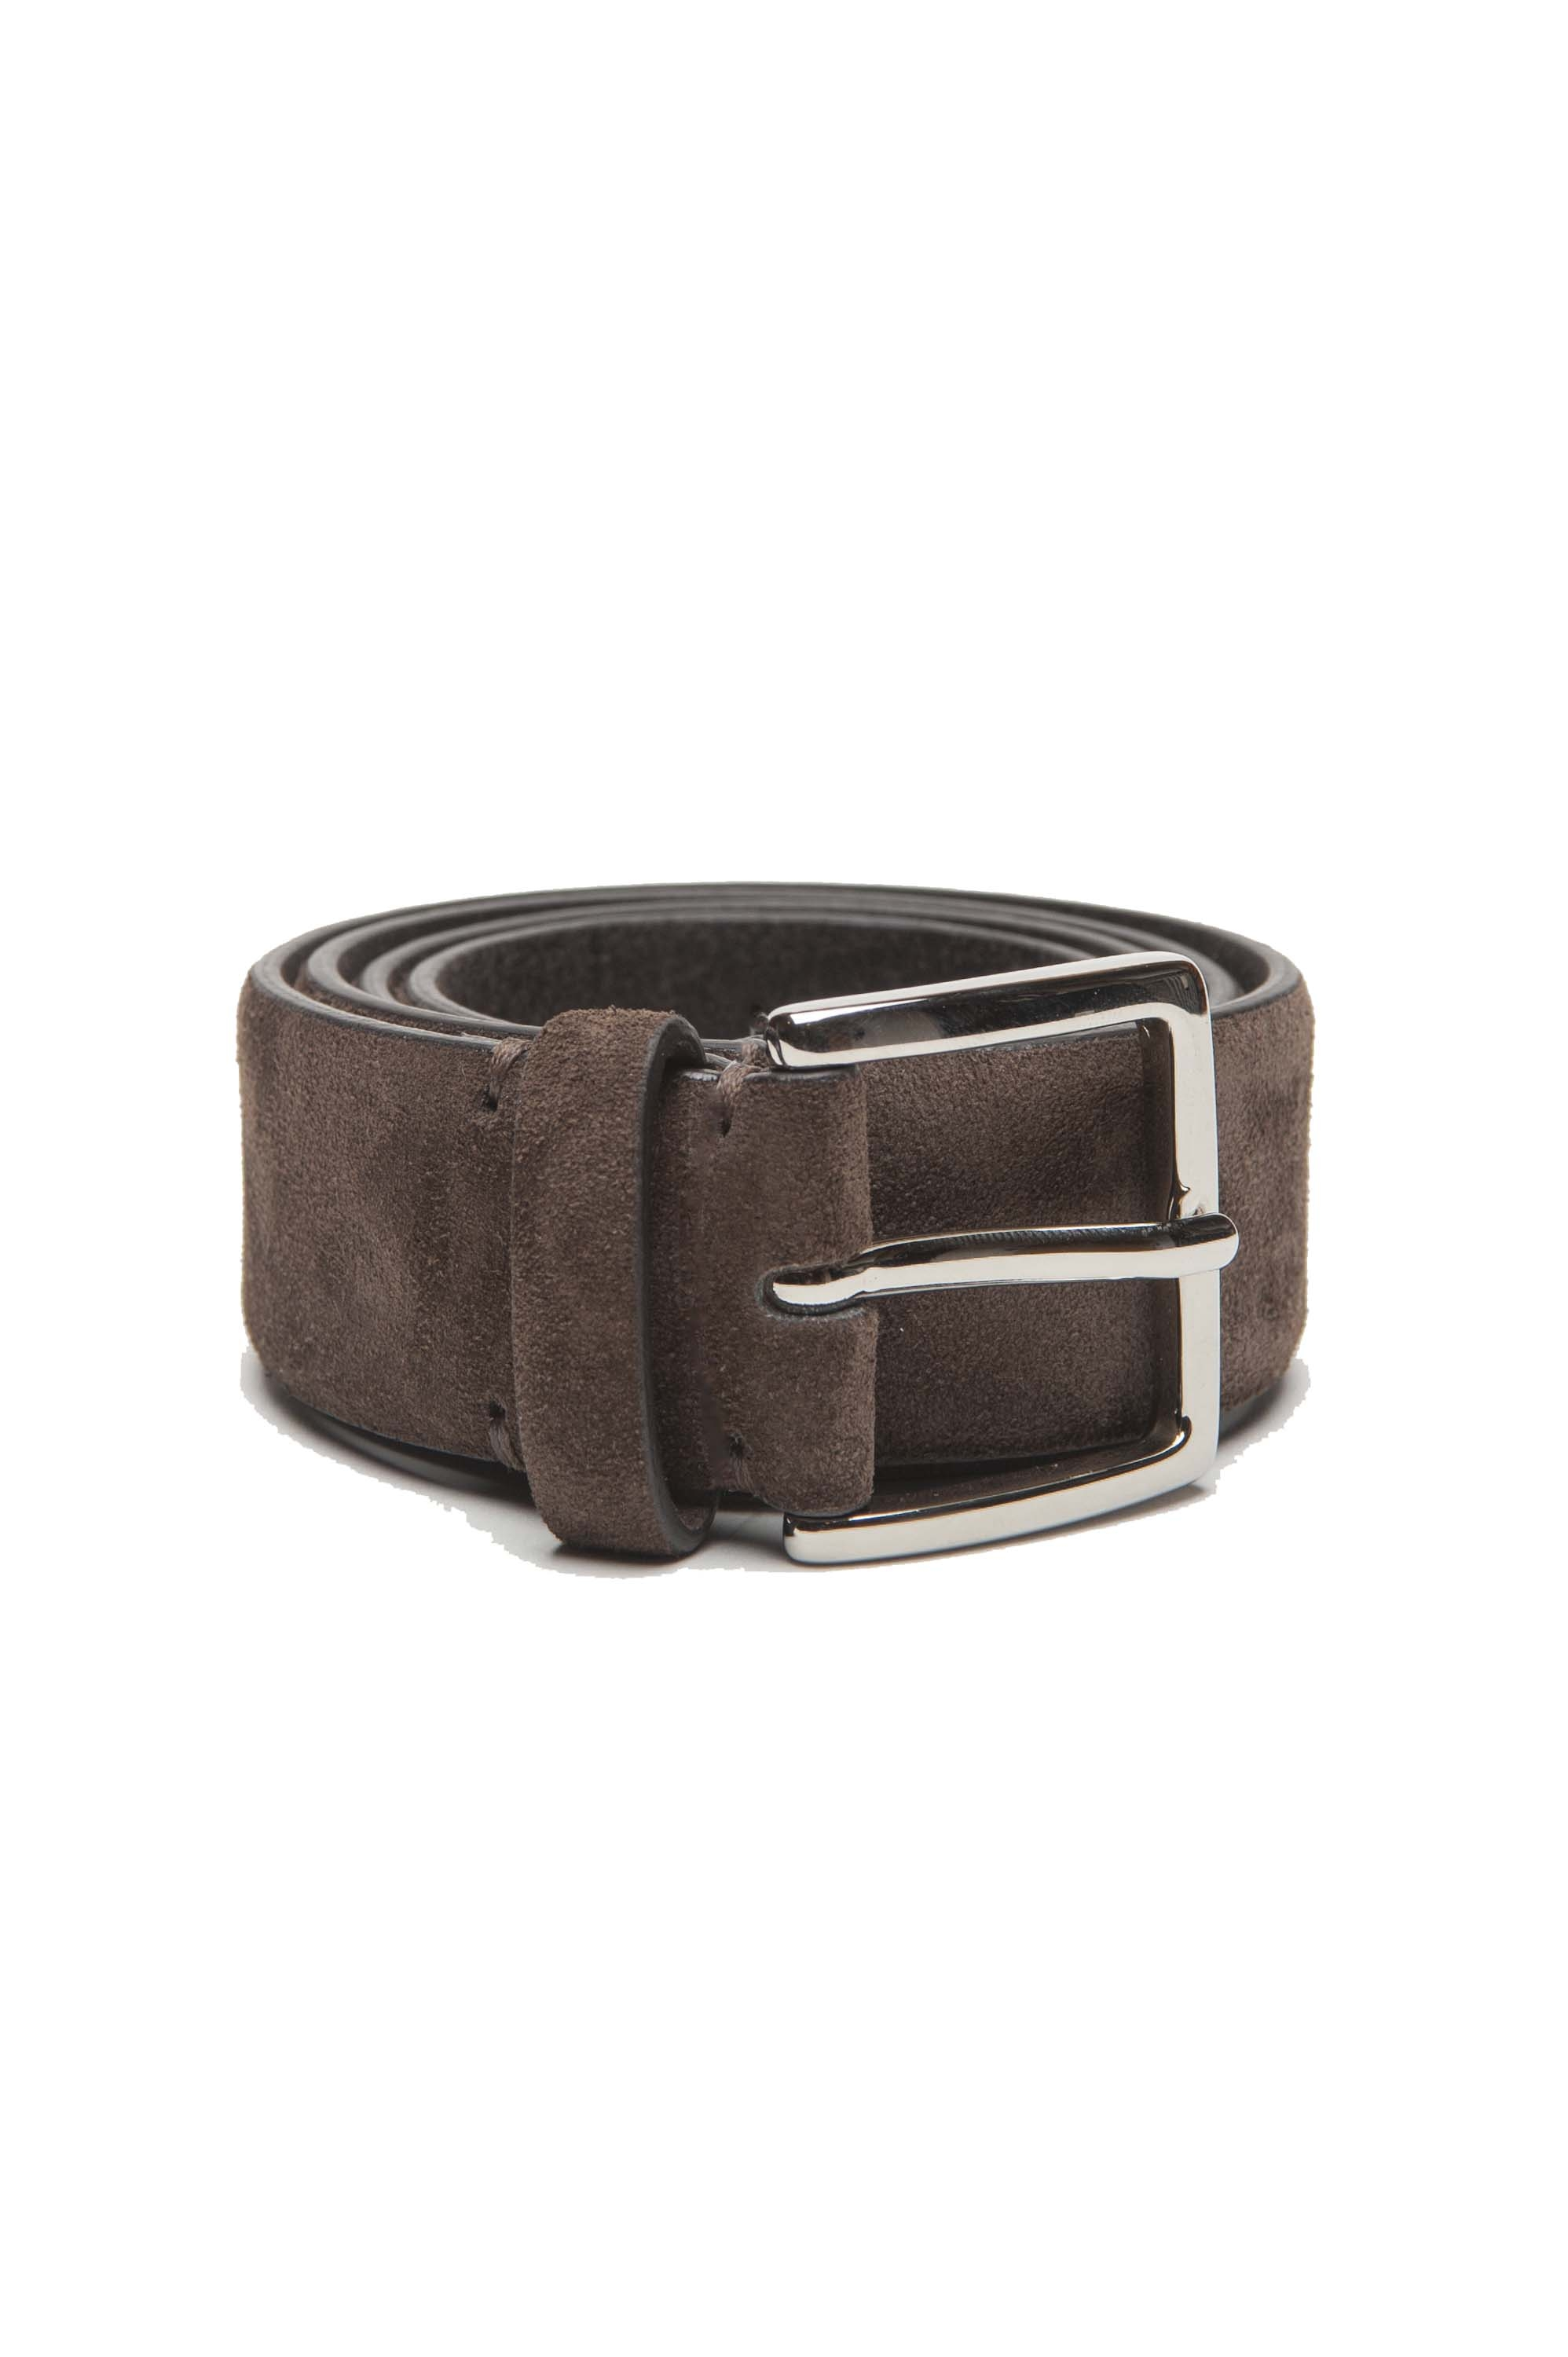 SBU 02810_2020SS Brown calfskin suede belt 1.4 inches  01